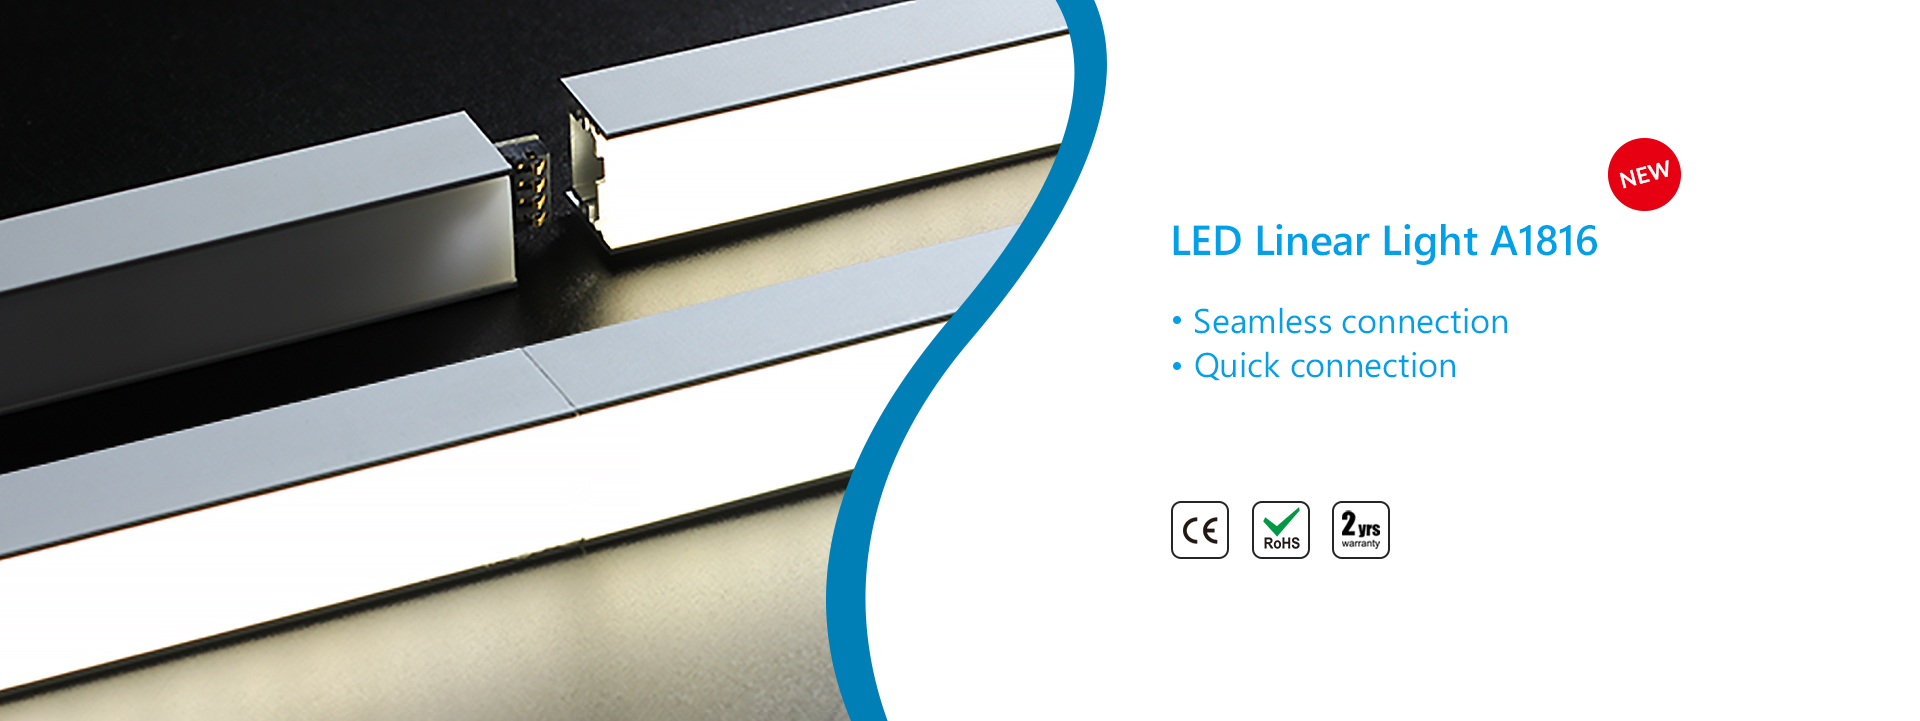 LED Linear Light A1816